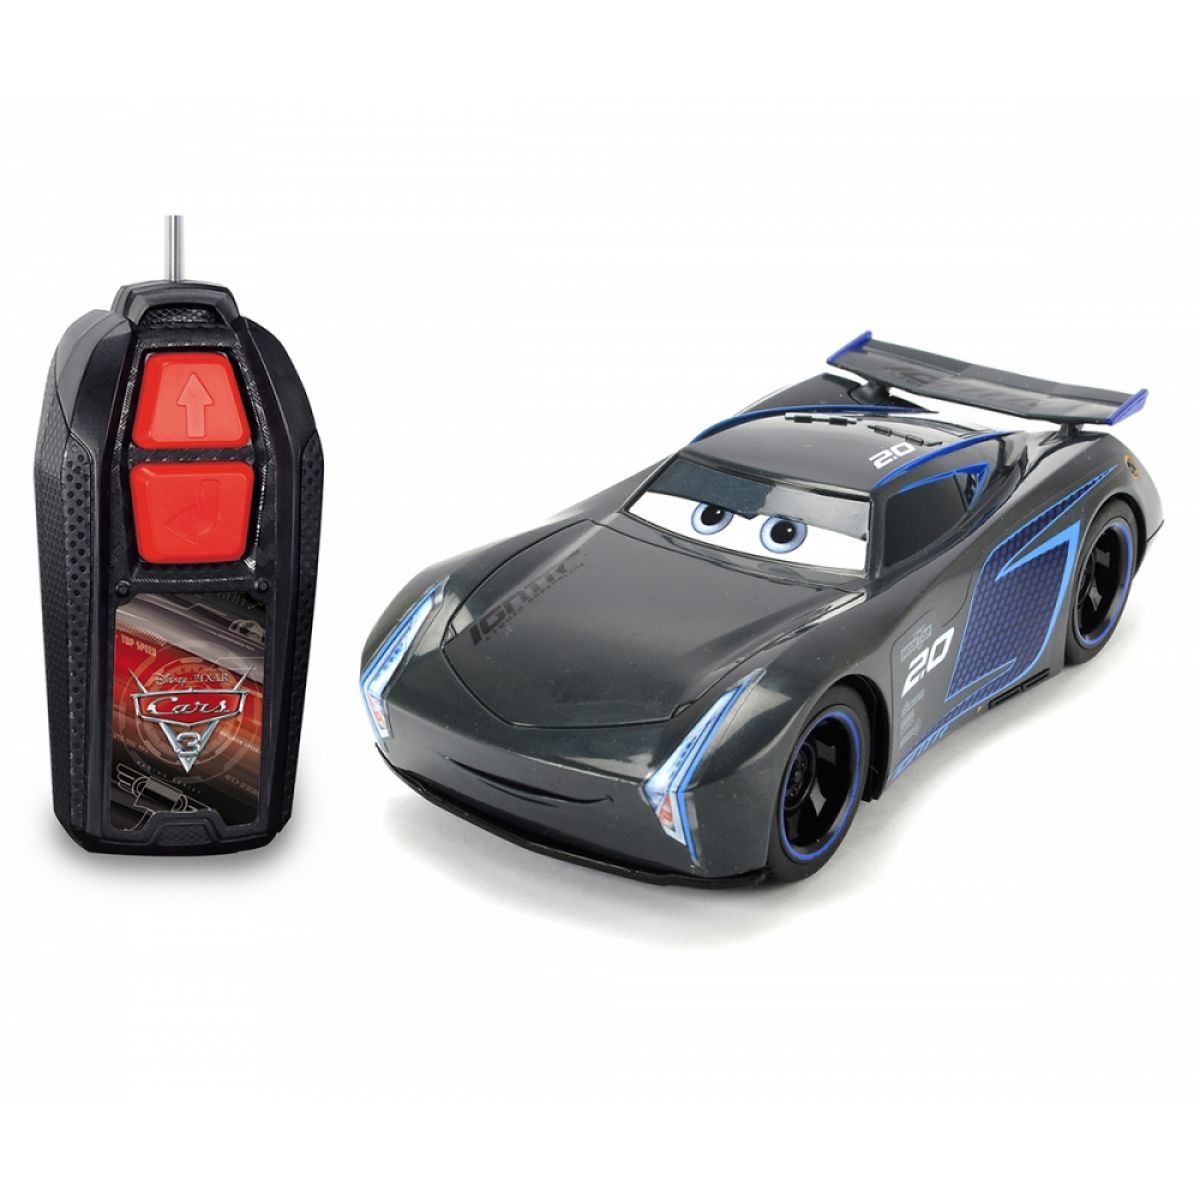 Dickie RC Cars 3 Jackson Hrom Single Drive 1:32